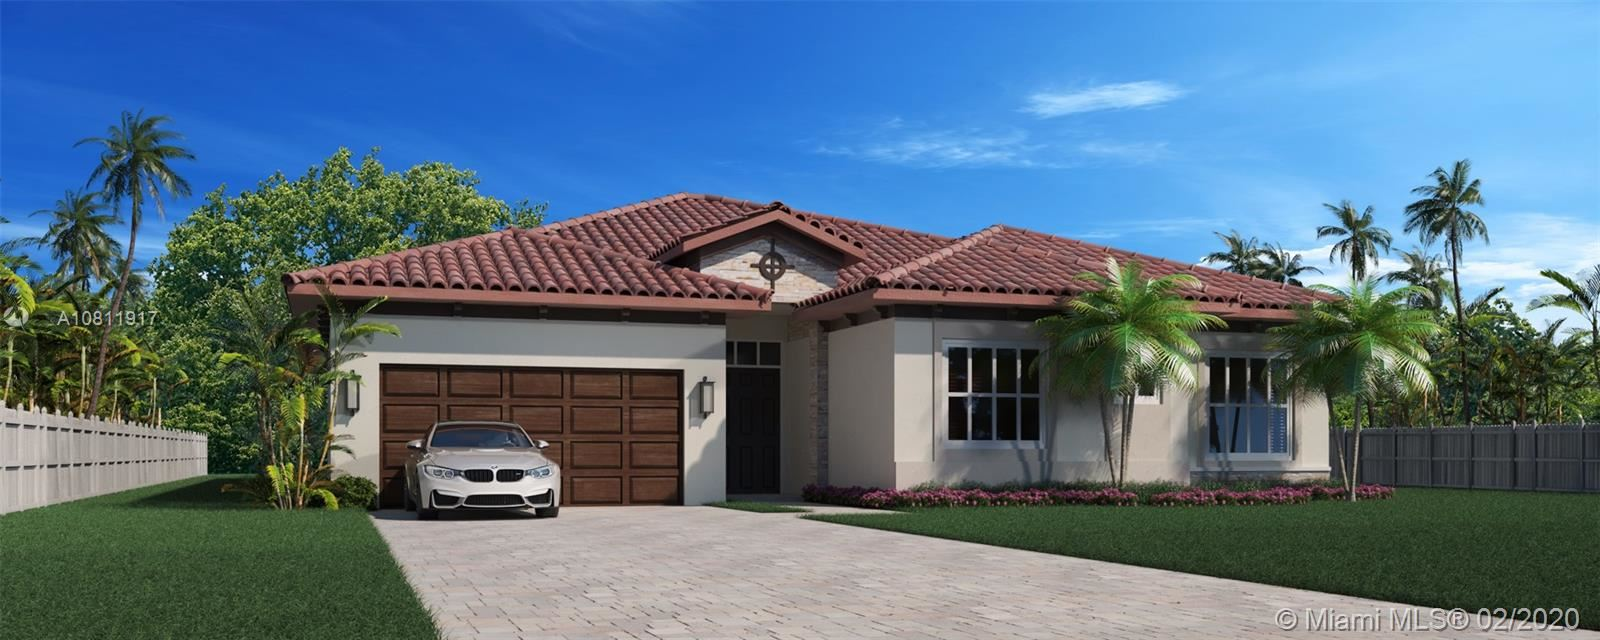 29132 SW 165 AVE, Homestead, FL 33030 - #: A10811917